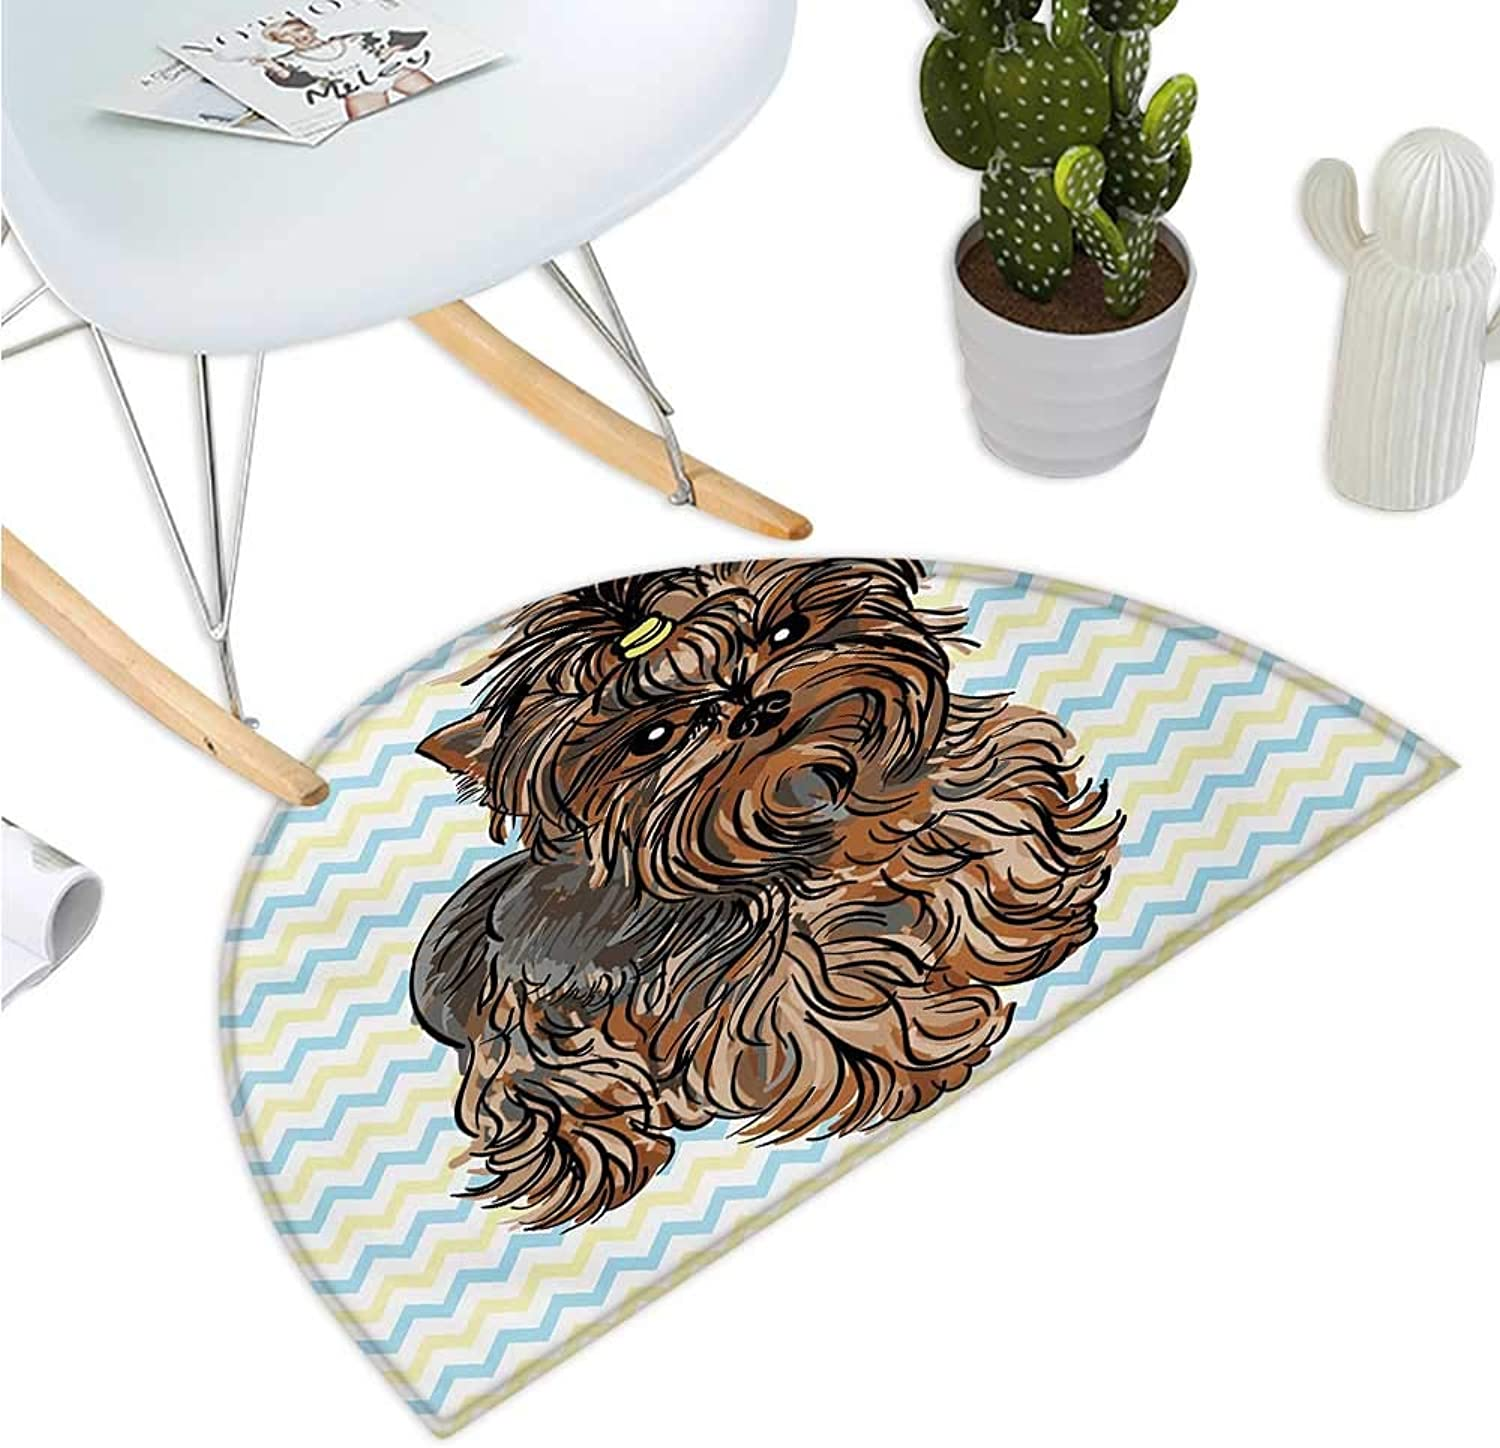 Yorkie Half Round Door mats Cute Brown Yorkie with Even Cuter Buckle on its Head Drawing on Chevron Backdrop Bathroom Mat H 51.1  xD 76.7  Chesnut Brown